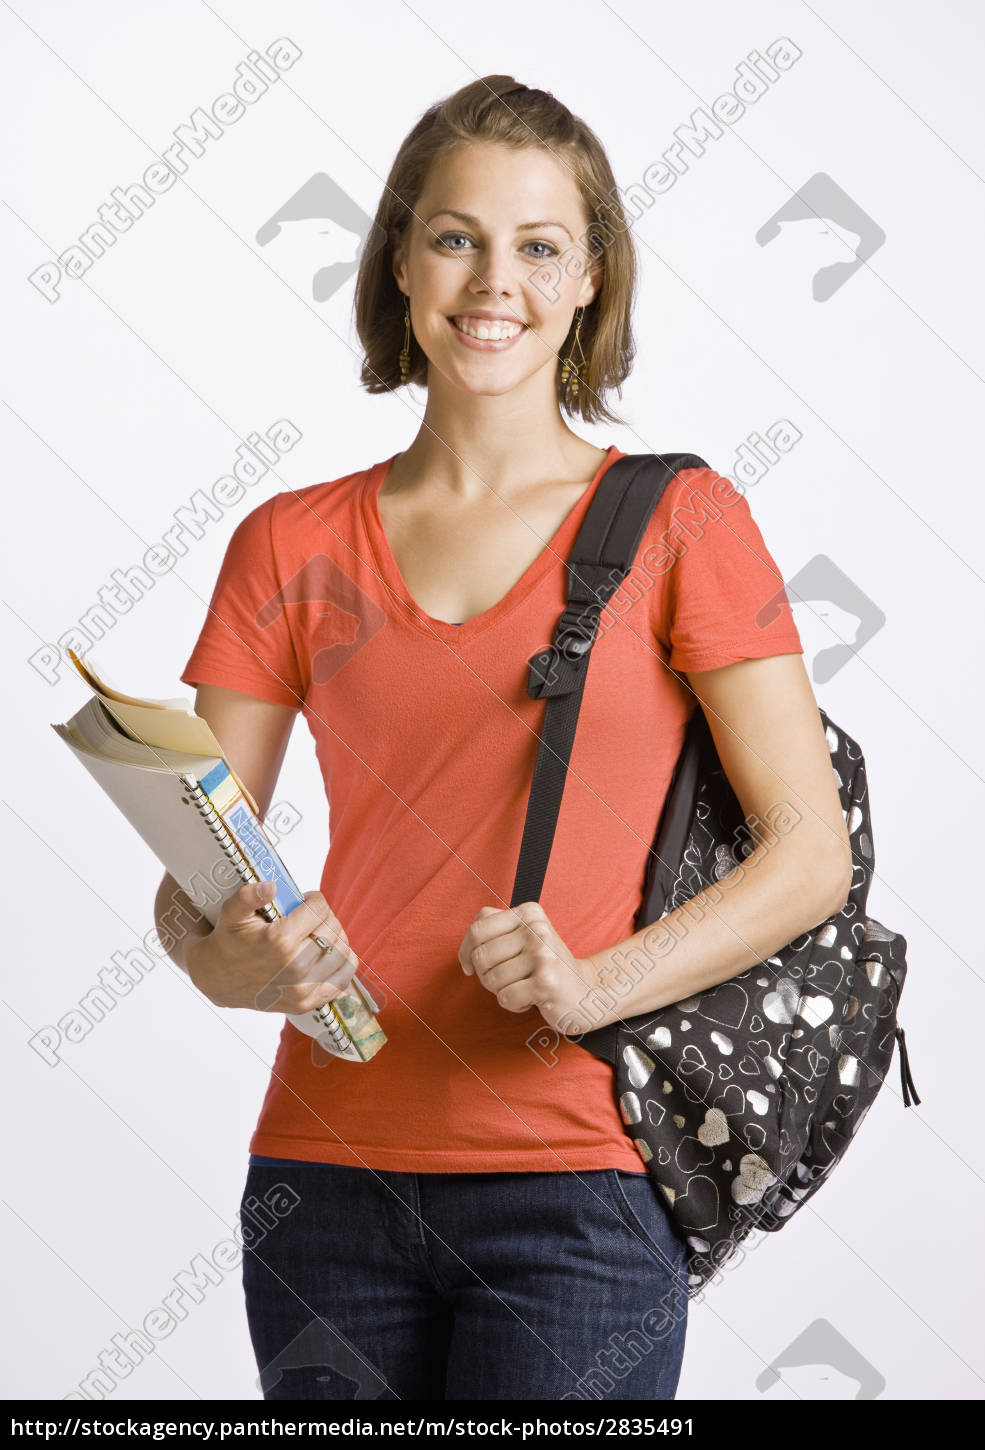 student, carrying, backpack, and, books - 2835491